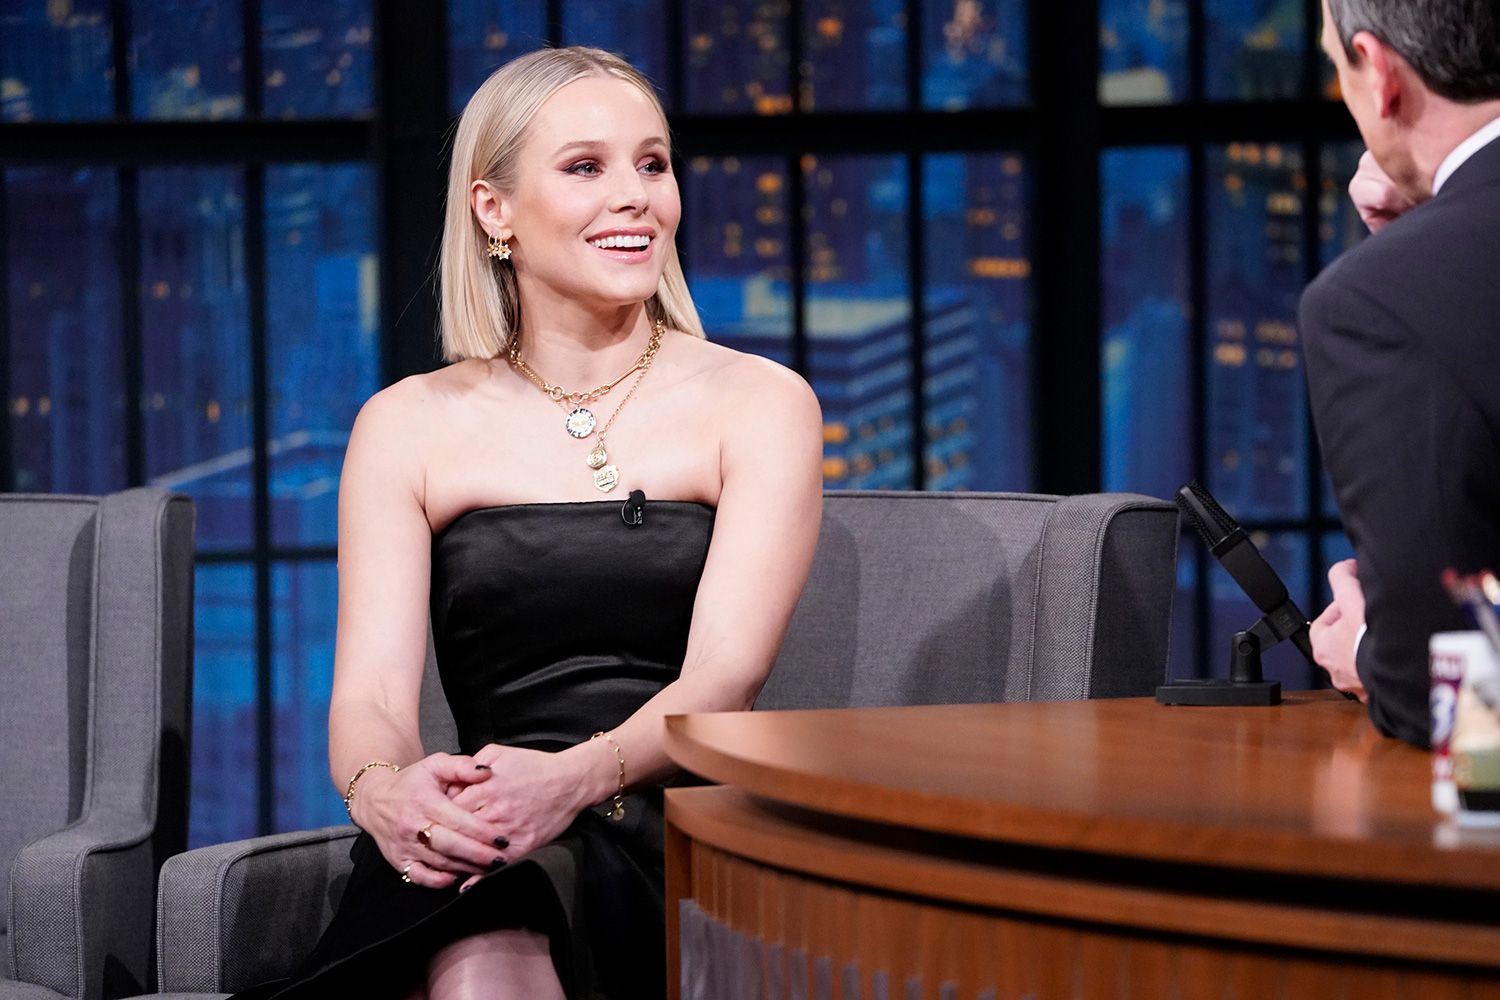 Kristen Bell during an interview with host Seth Meyers on January 29, 2020